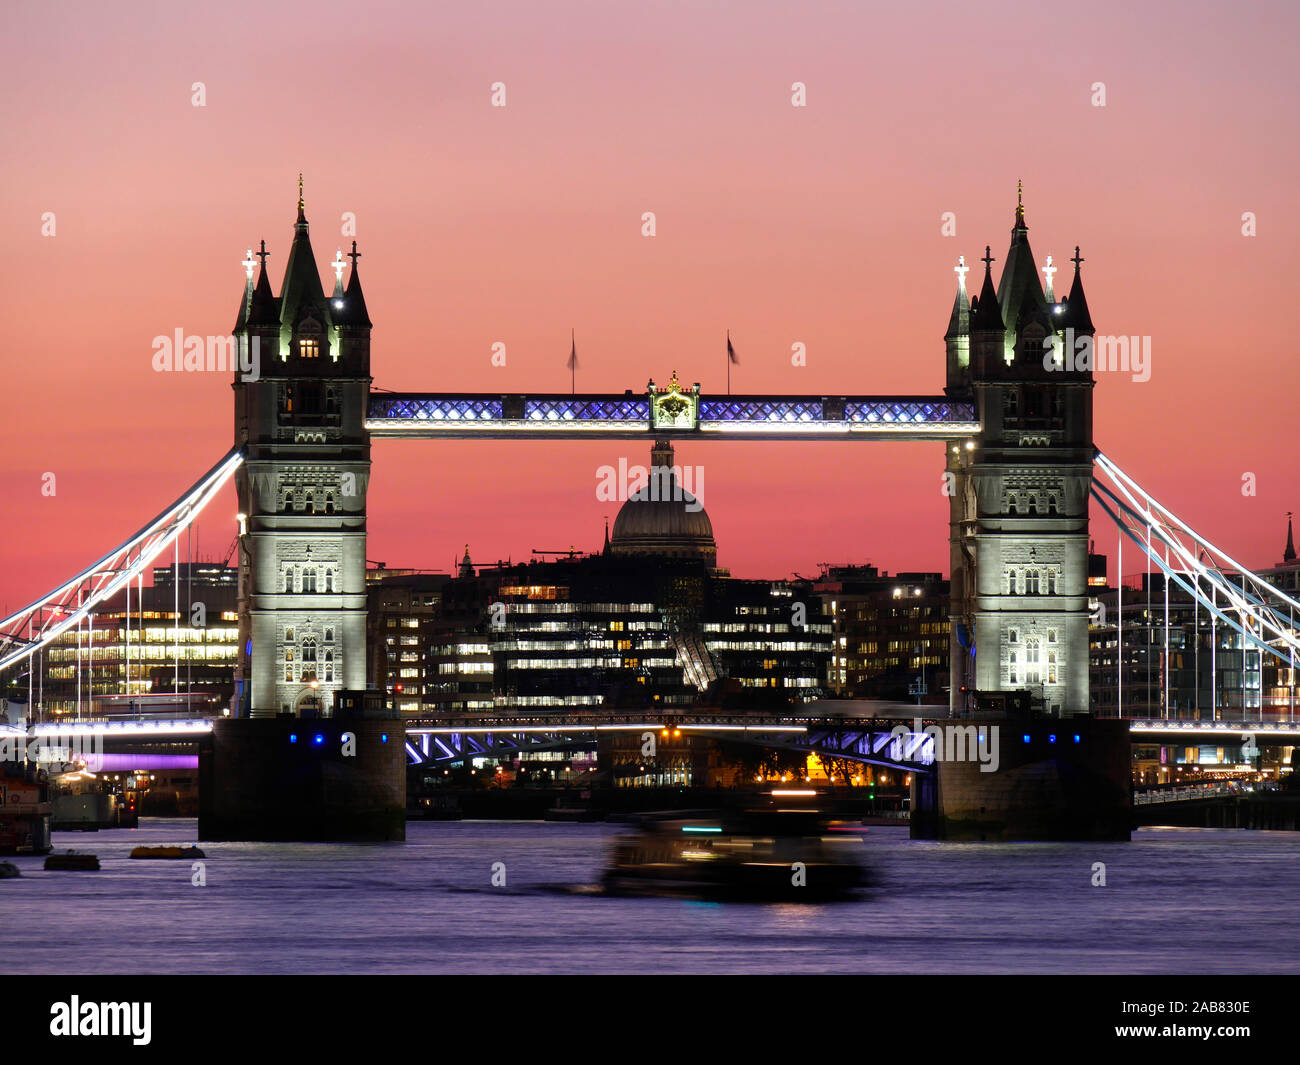 Panoramic view of Tower Bridge framing St. Paul's Cathedral, London, England, United Kingdom, Europe Stock Photo